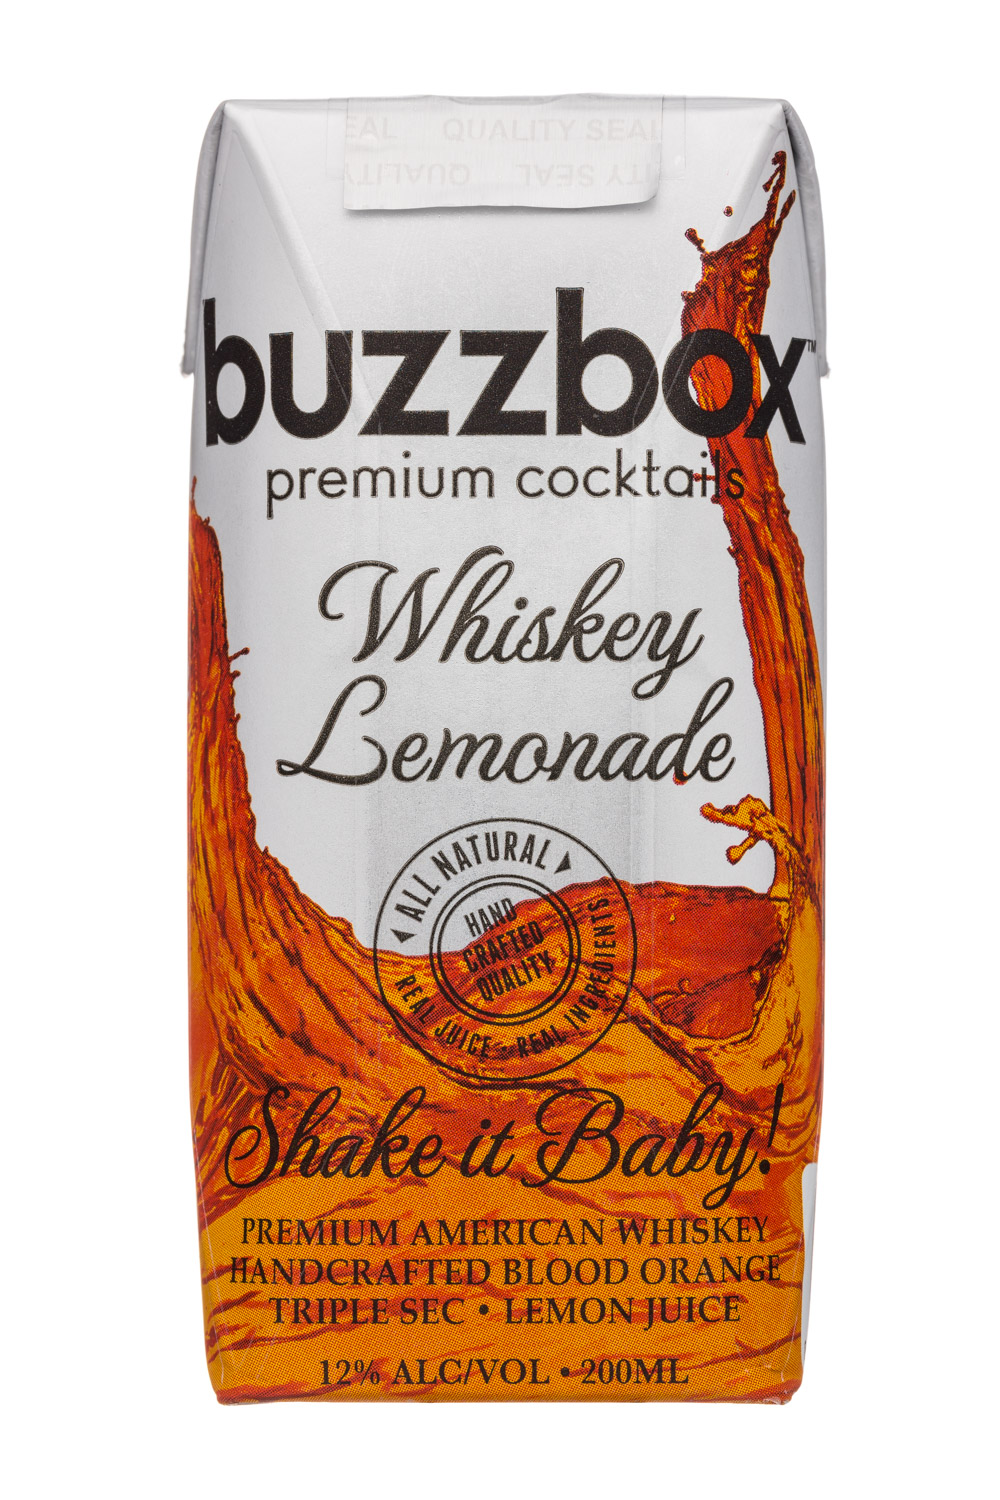 BuzzBox: Buzzbox-200ml-Cocktail-WhiskeyLemonade